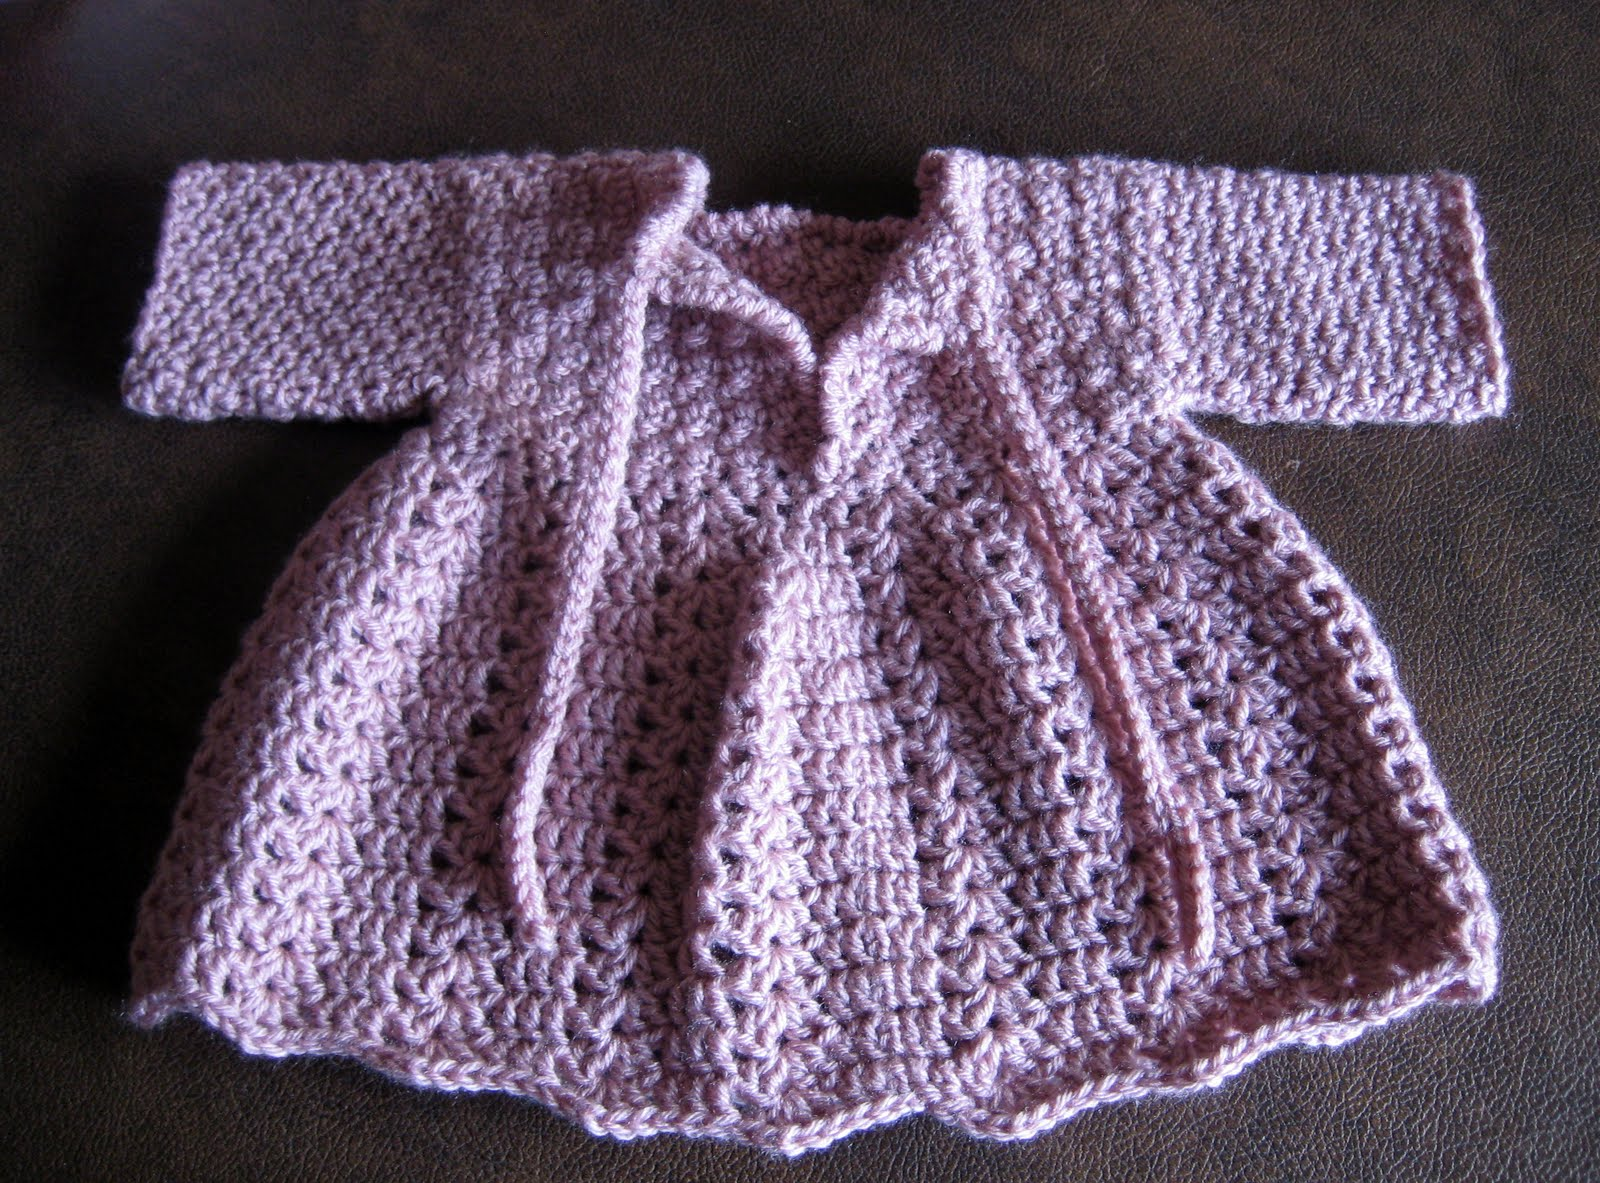 How To Crochet Baby Dress Pattern : Knotty Generation: Crochet Baby Winter Dress